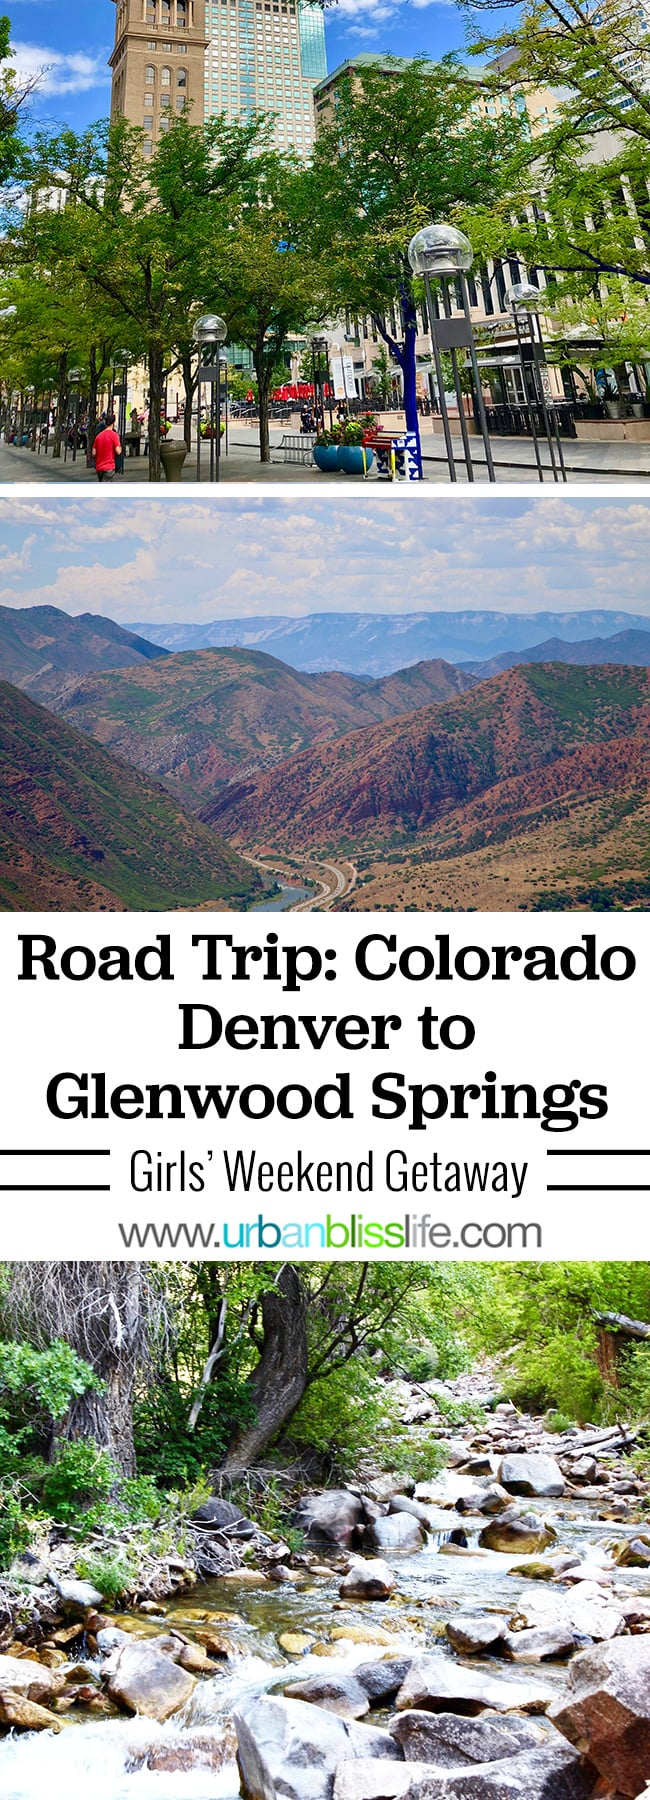 Girls Getaway Weekend Road Trip! Destination: Denver, Colorado to Glenwood Springs, Colorado. Travel guide on UrbanBlissLife.com